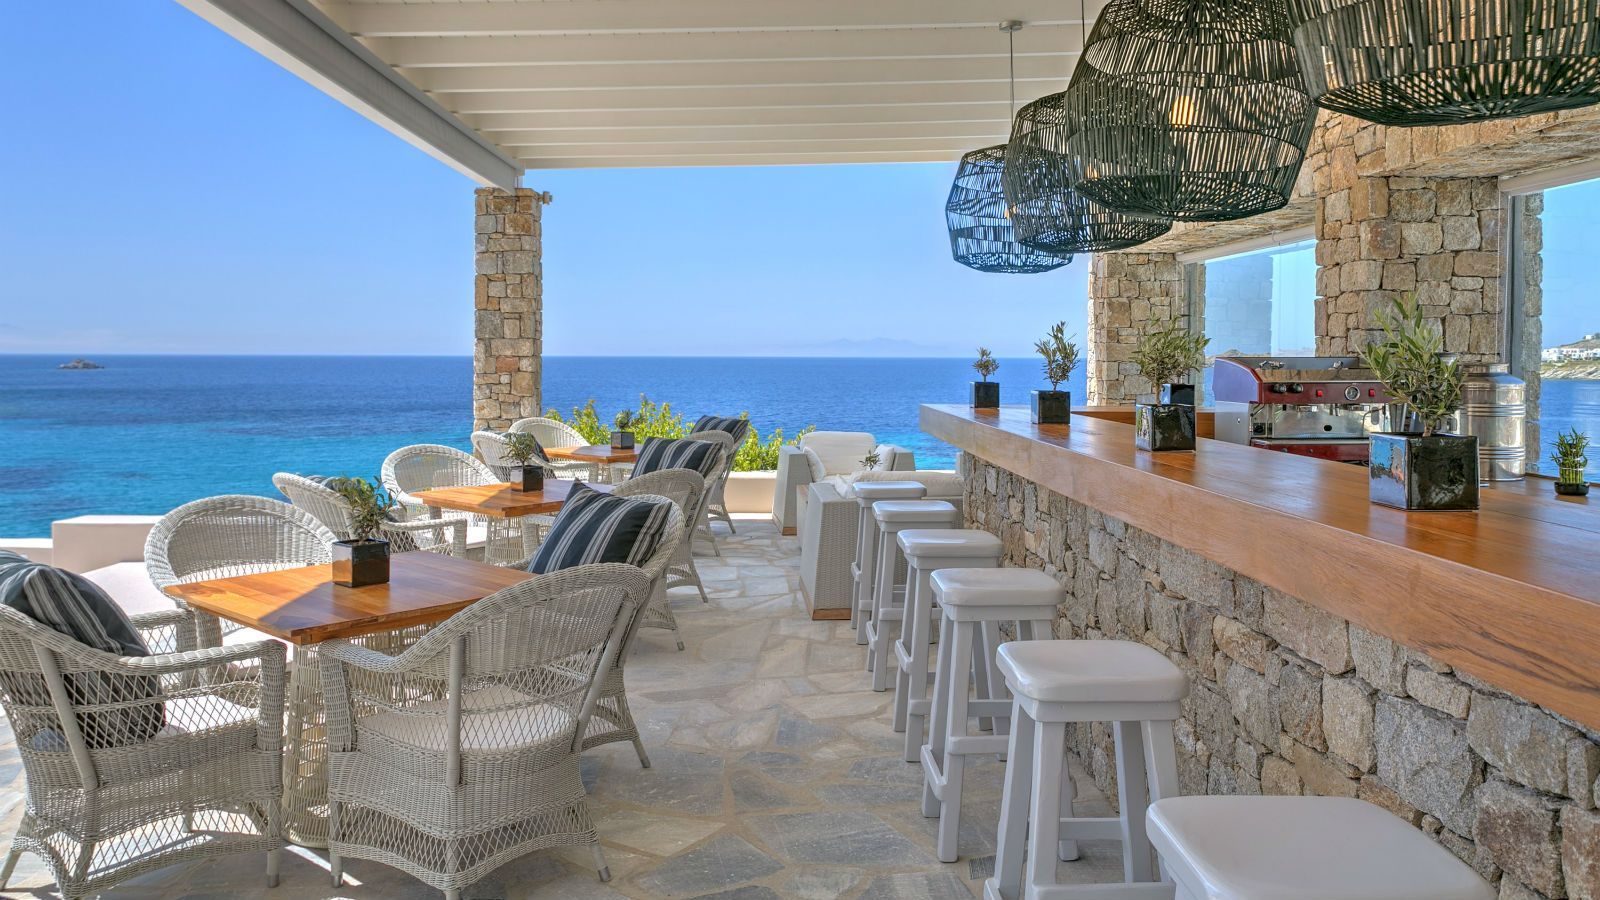 The Colonial Pool Restaurant & Bar - Santa Marina Resort Mykonos